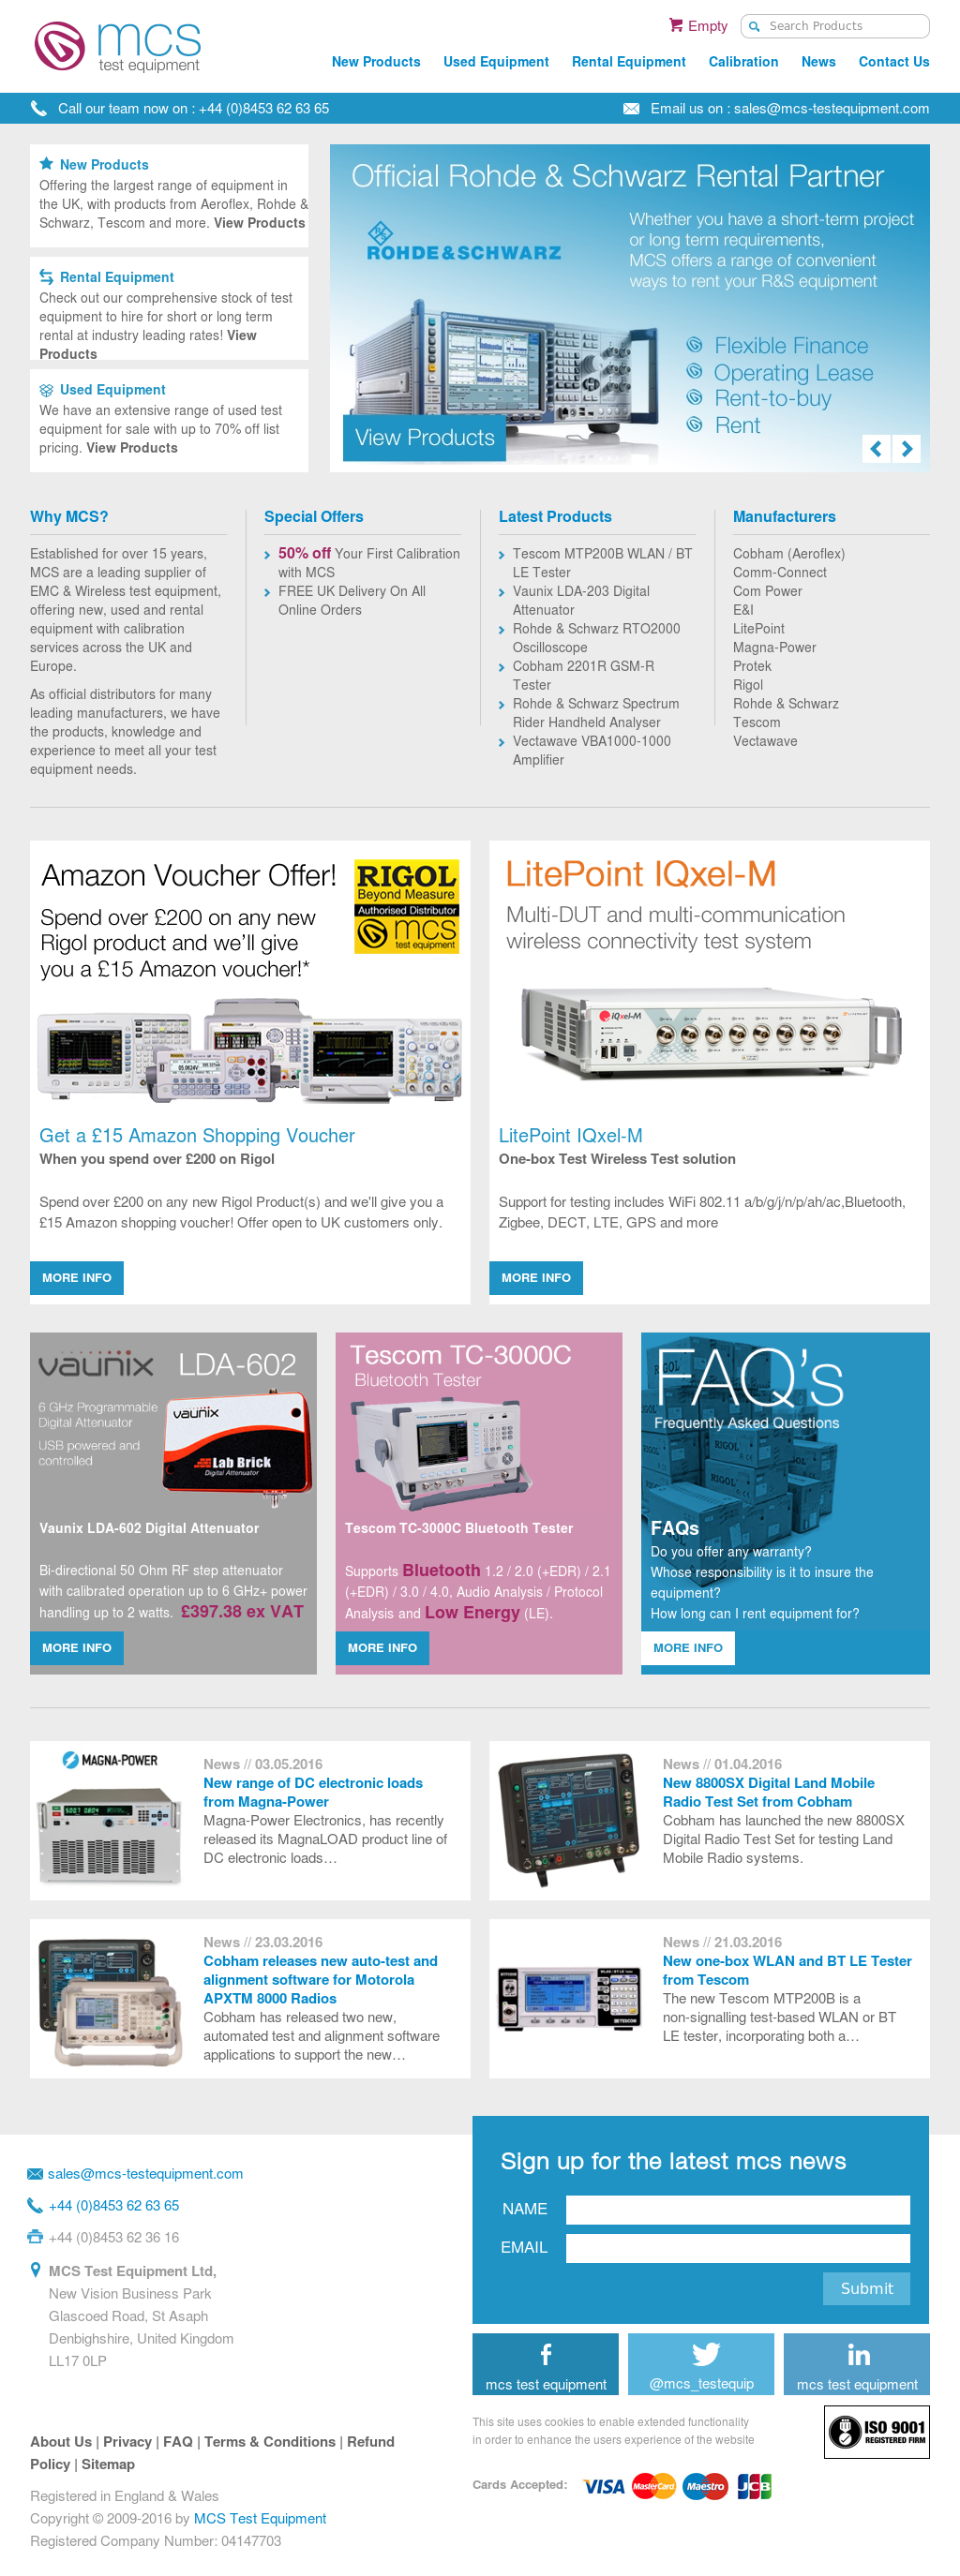 MCS Test Equipment Competitors, Revenue and Employees - Owler